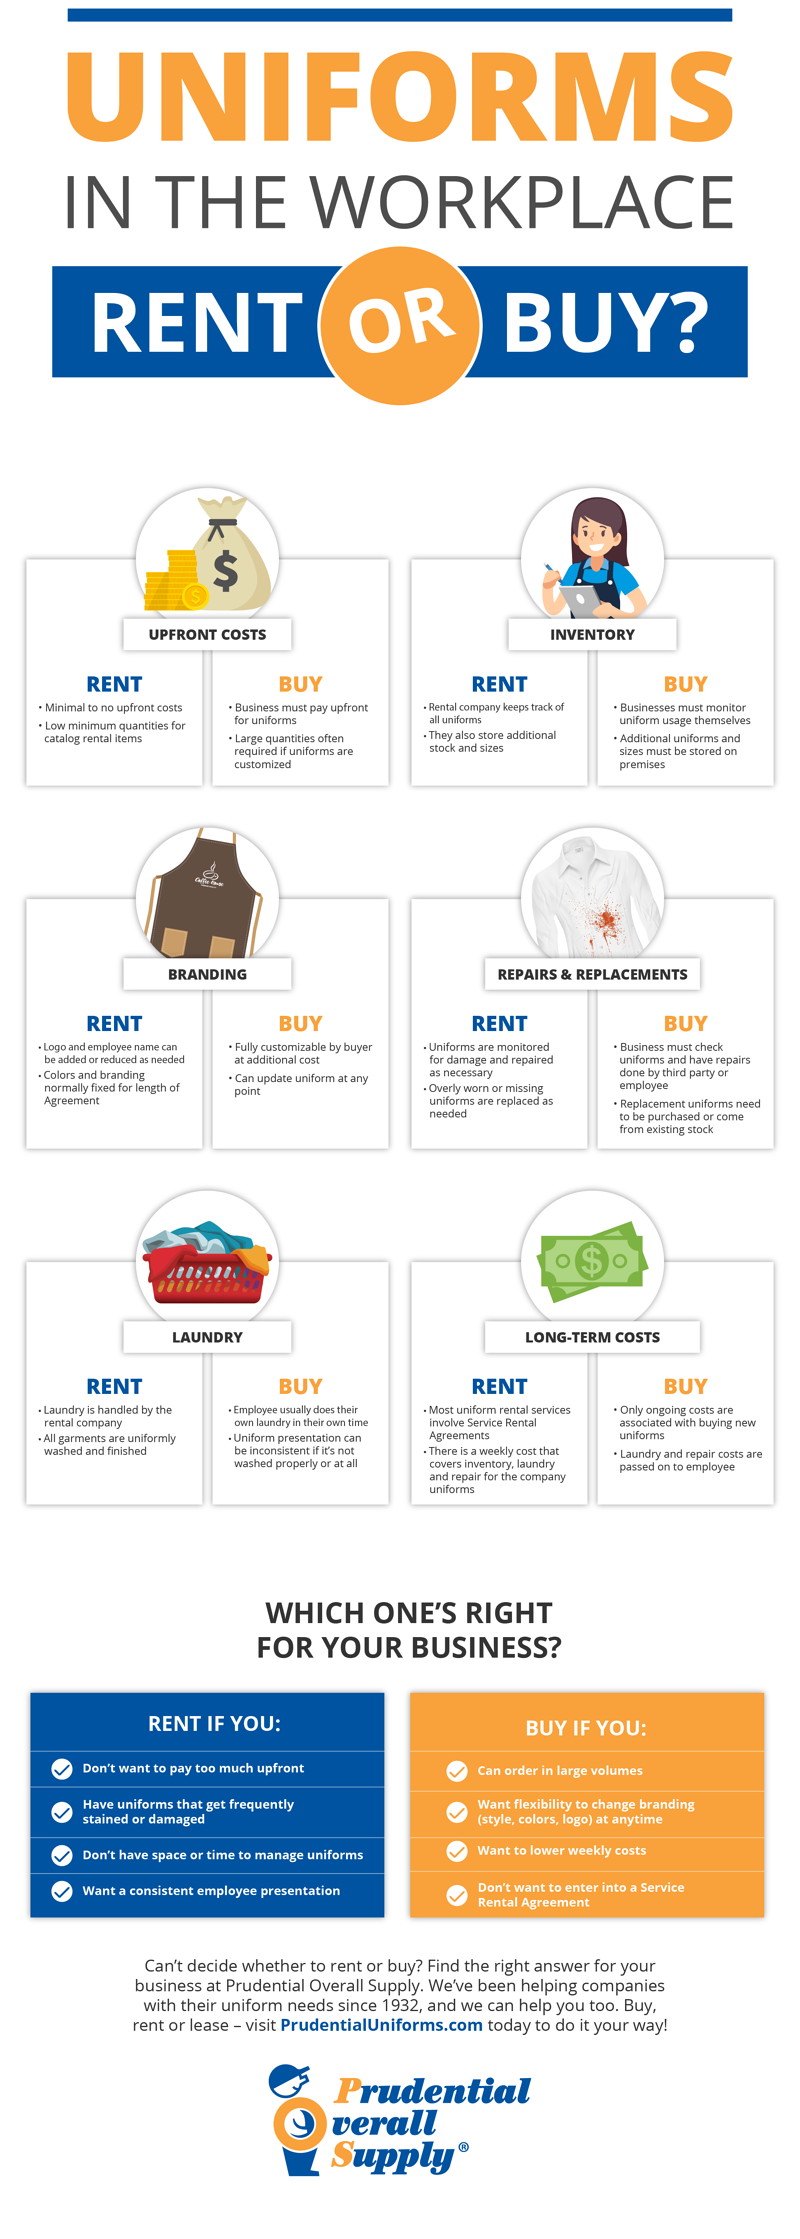 cutApproved-infographic_prudential_april2019-lrg